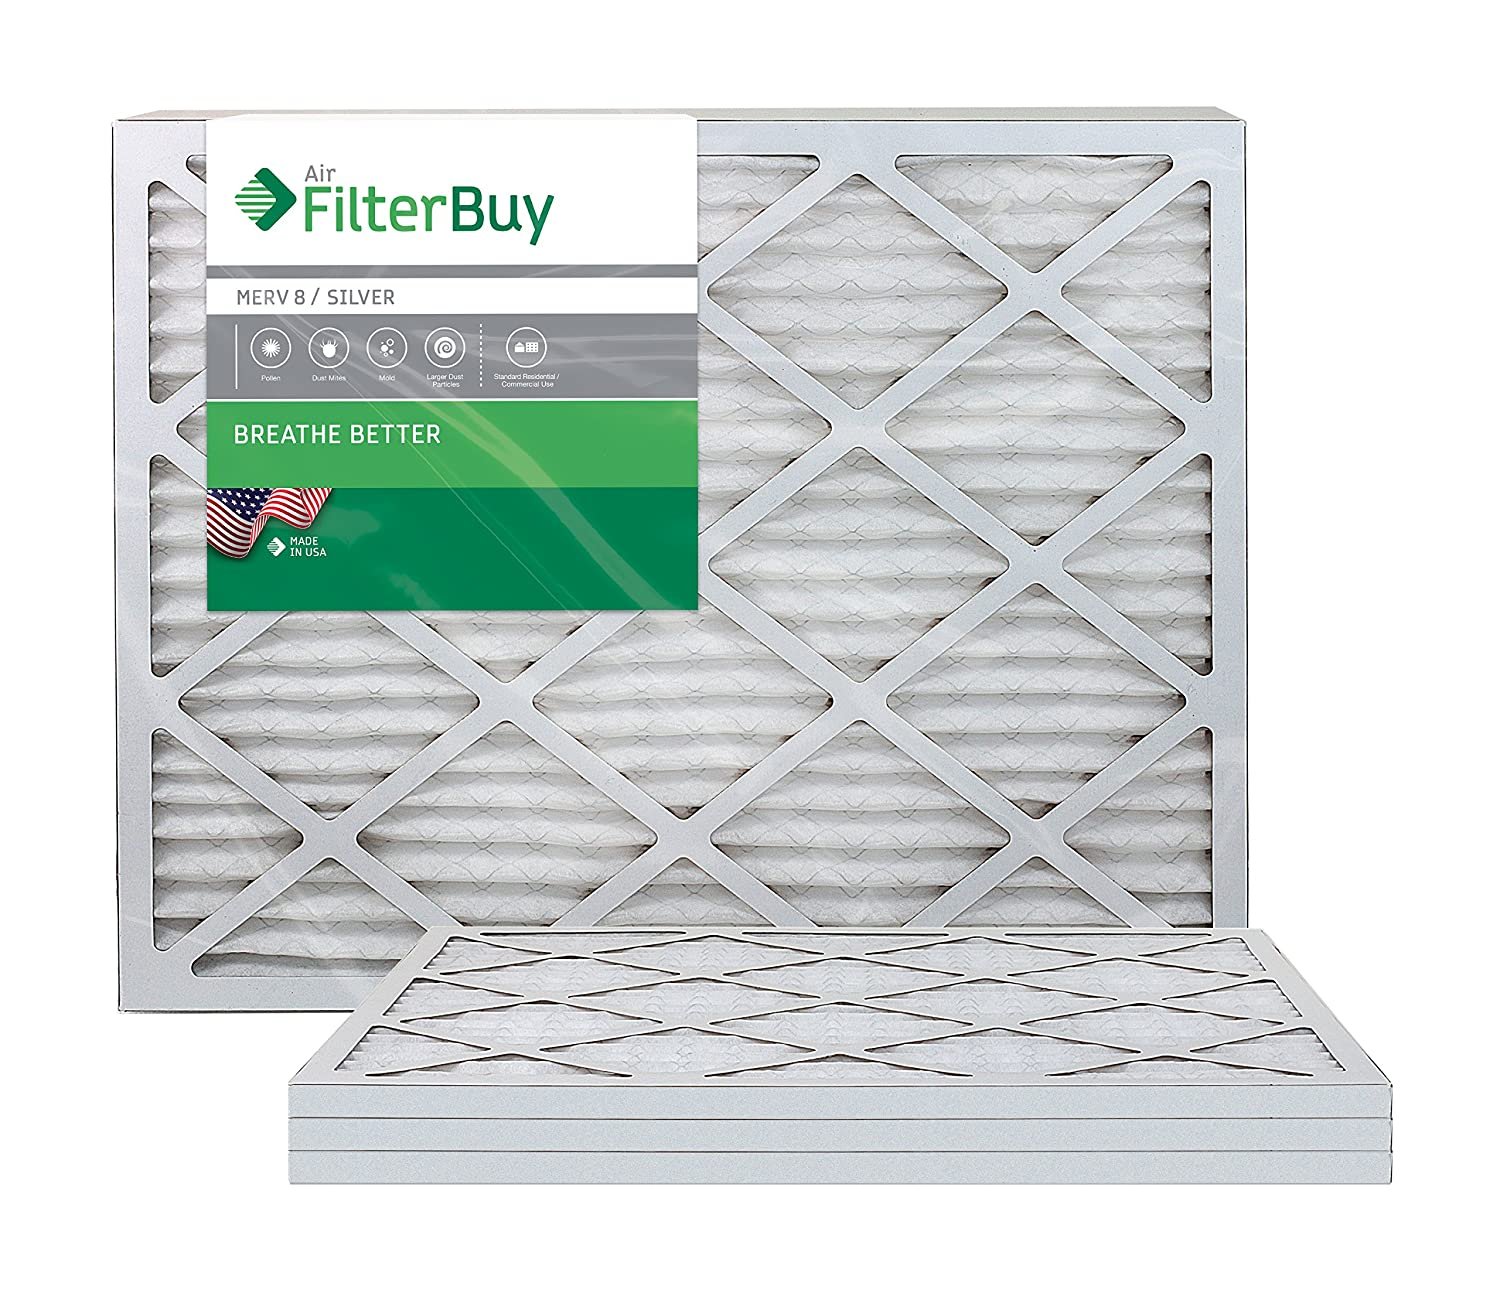 FilterBuy 18x24x1 MERV 8 Pleated AC Furnace Air Filter, (Pack of 4 Filters), 18x24x1 – Silver